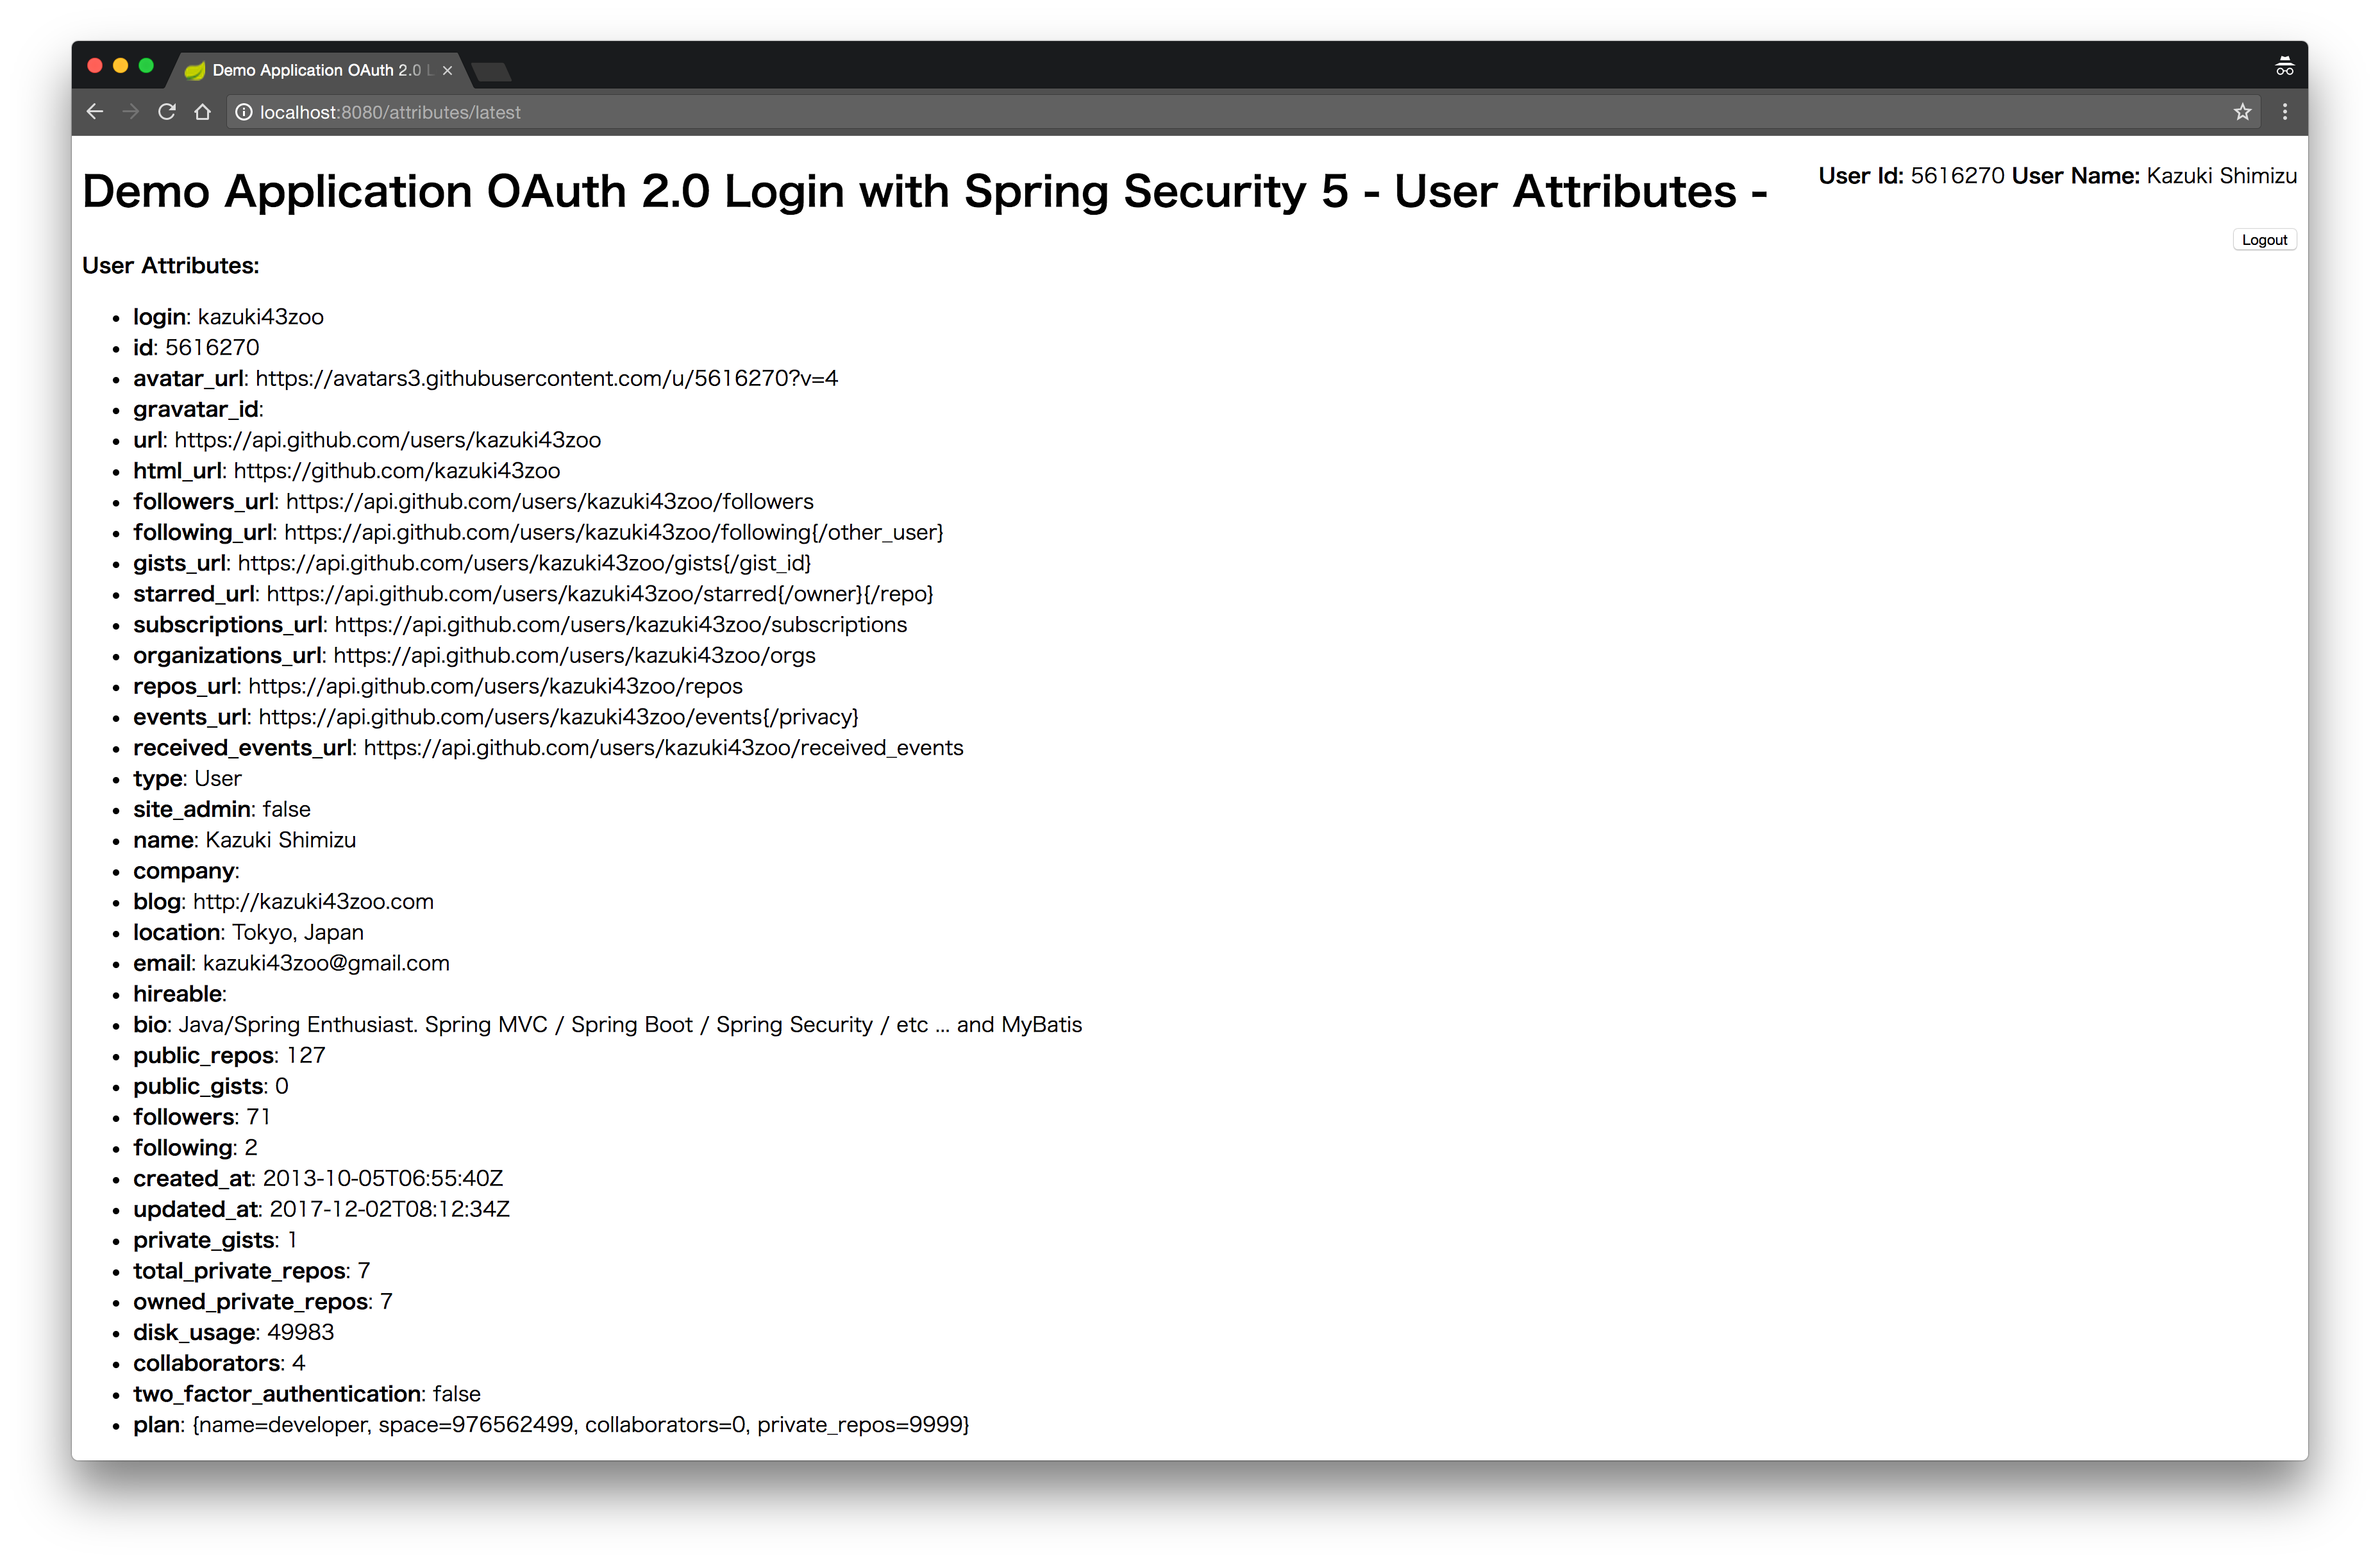 oauth2-attributes-latest-page.png